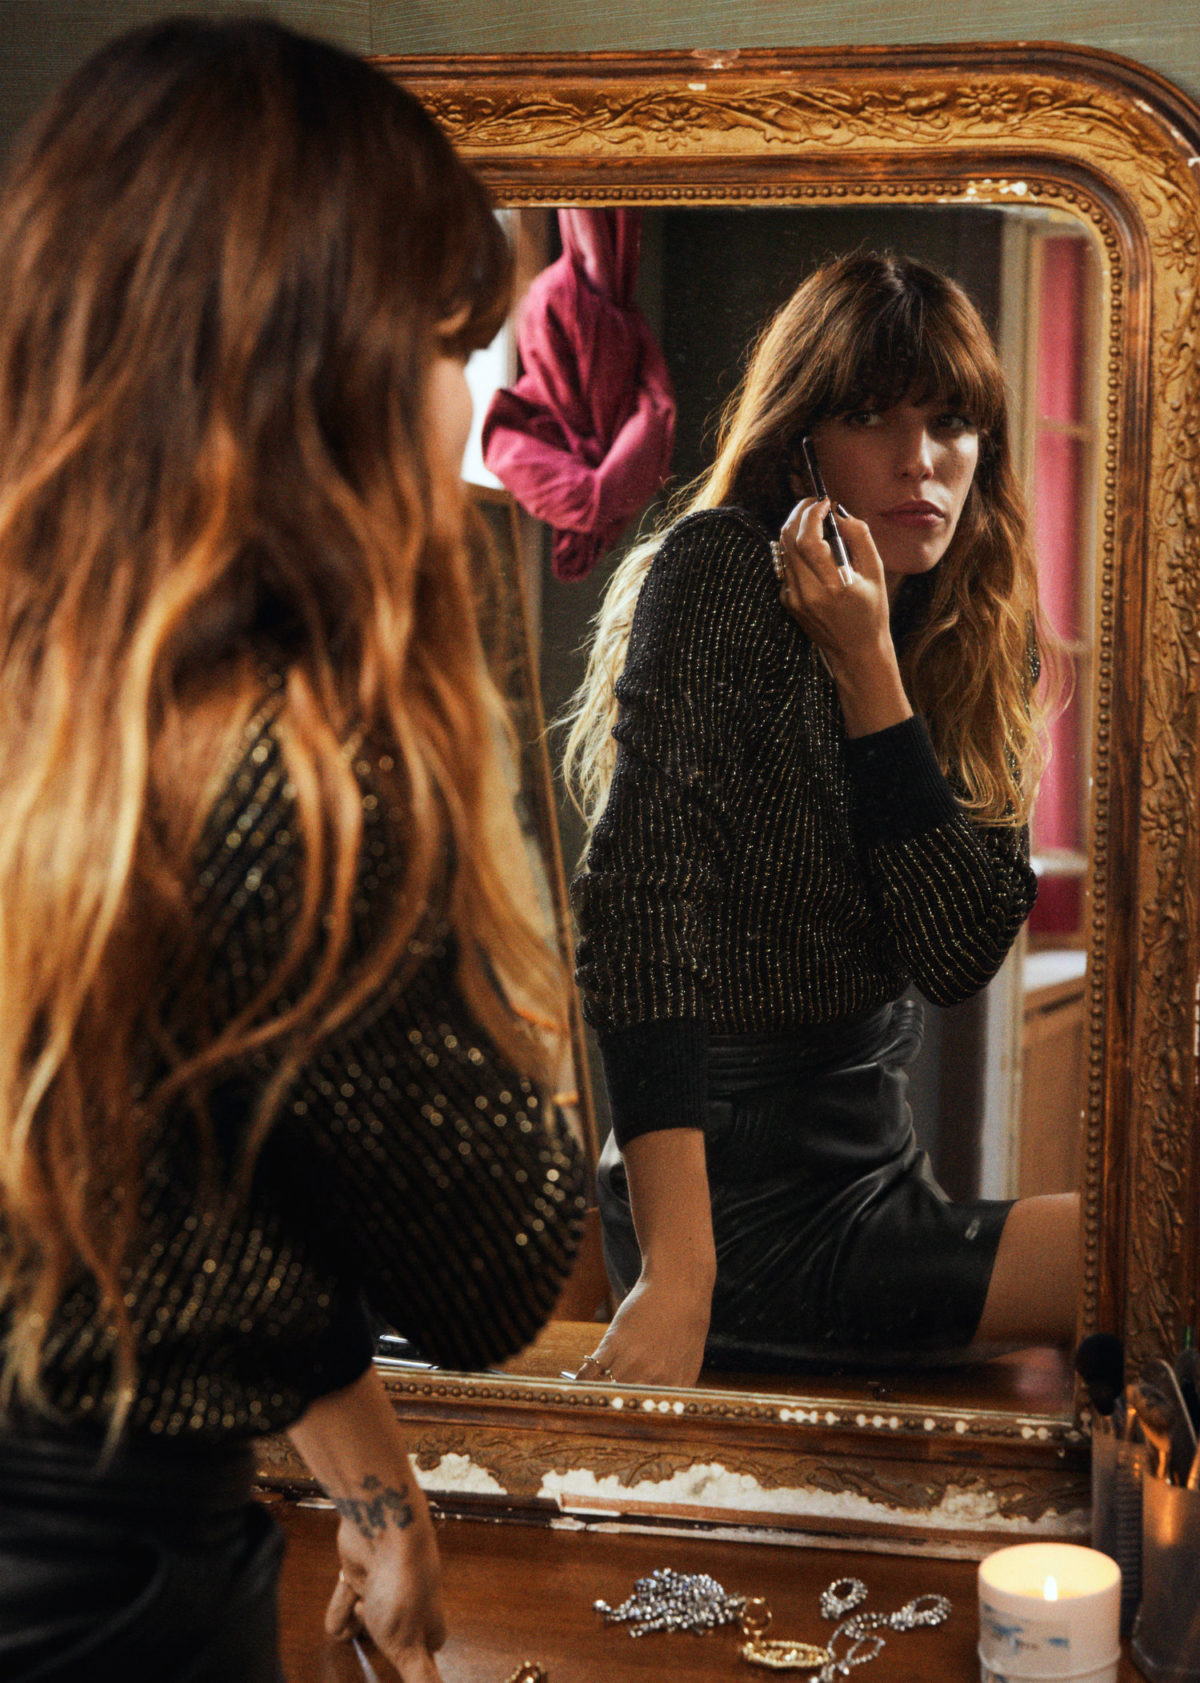 PREVIEW: &OTHER STORIES X SINGER LOU DOILLON